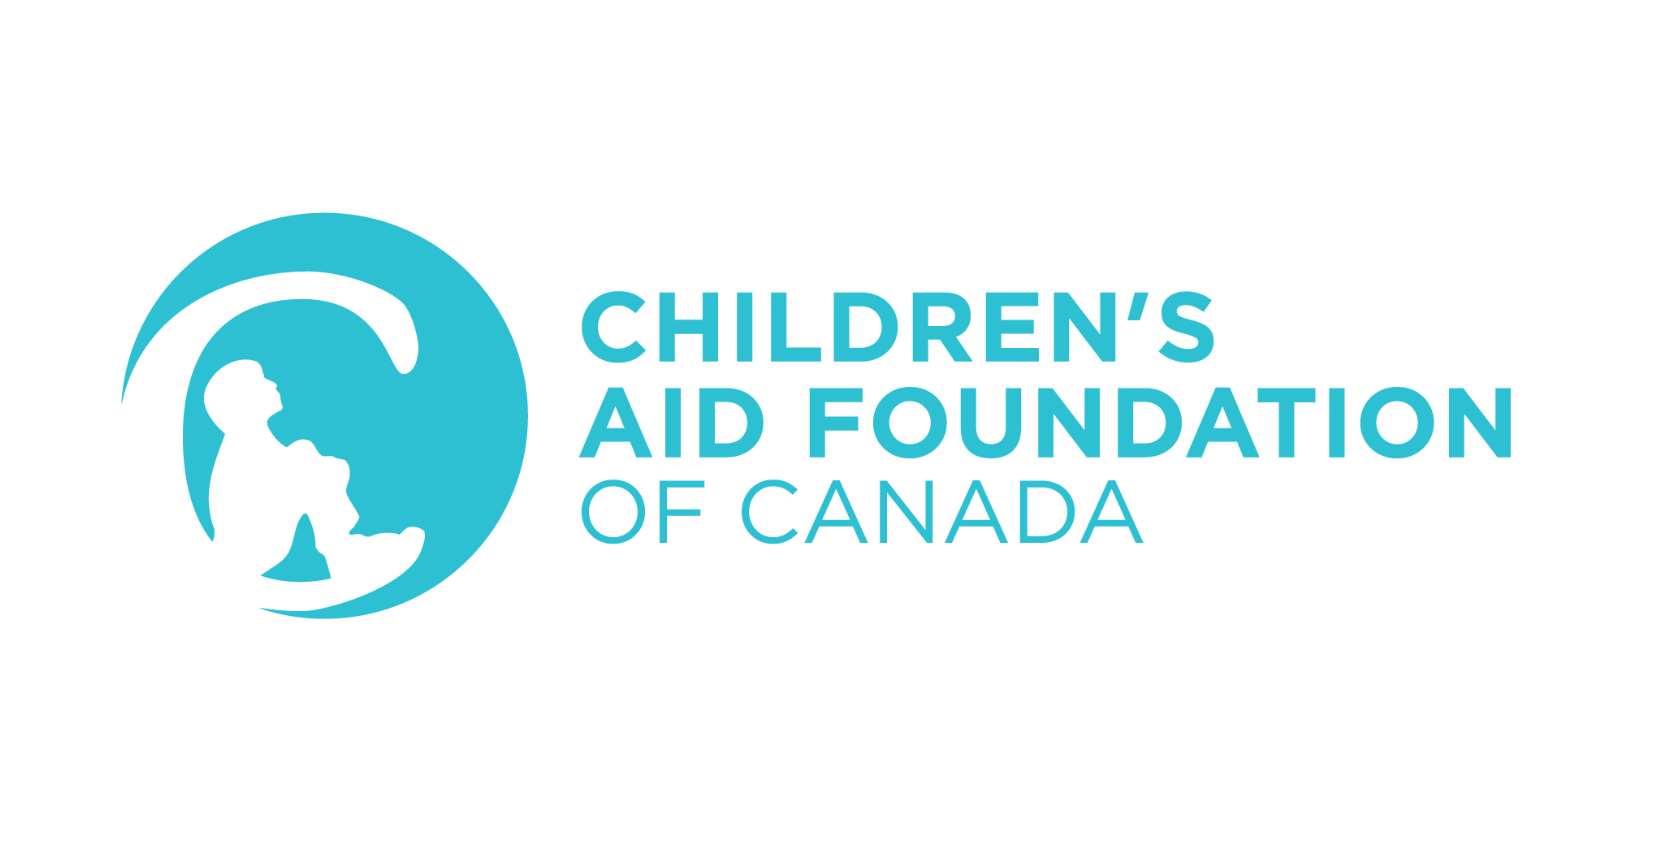 Children's Aid Foundation of Canada - The Children's Aid Foundation of Ottawa